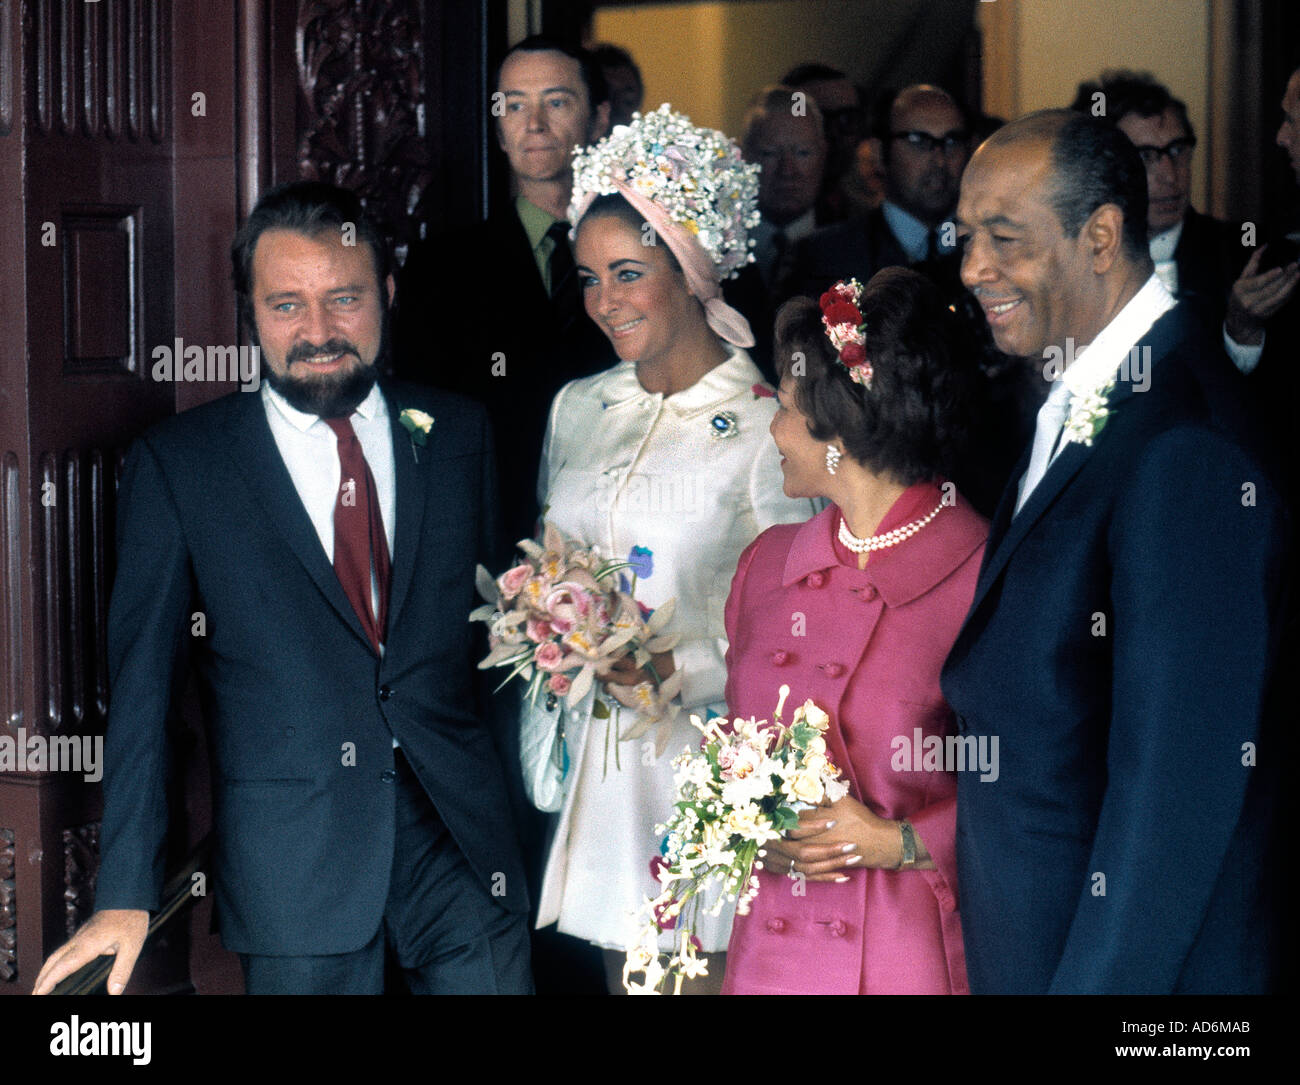 Actress Elizabeth Taylor And Actor Richard Burton Attend Wedding Of Robert Wilson Gladys Mills At Caxton Hall London In 1969